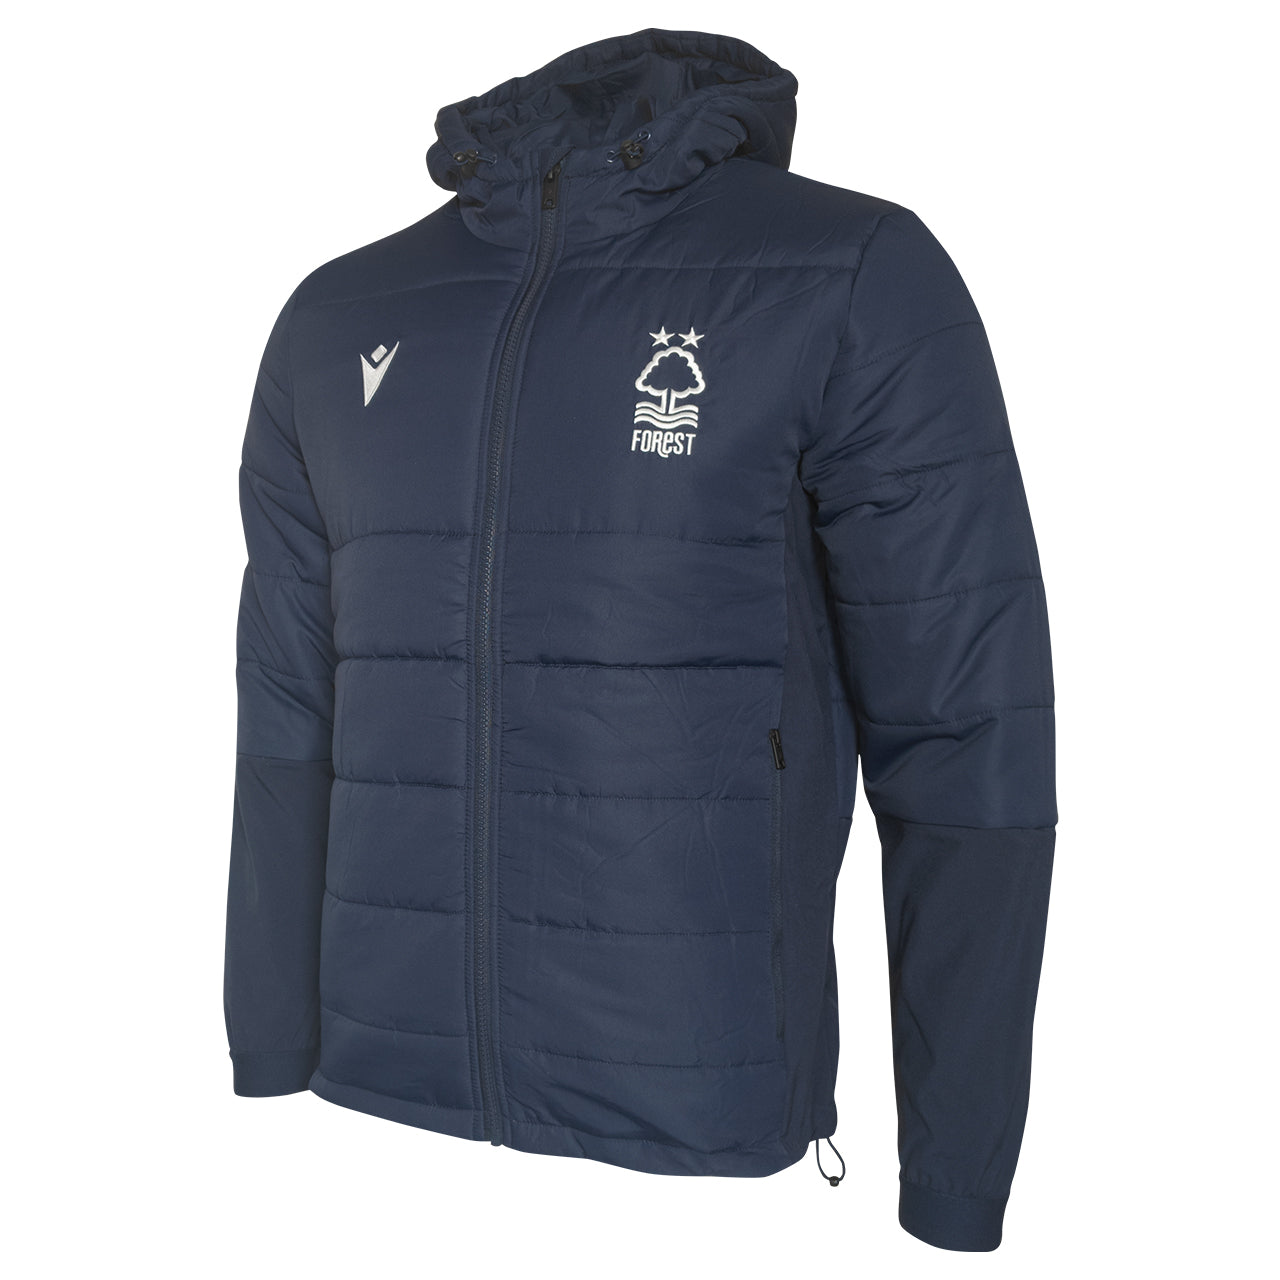 NFFC Junior Player Bomber Jacket 2020/21